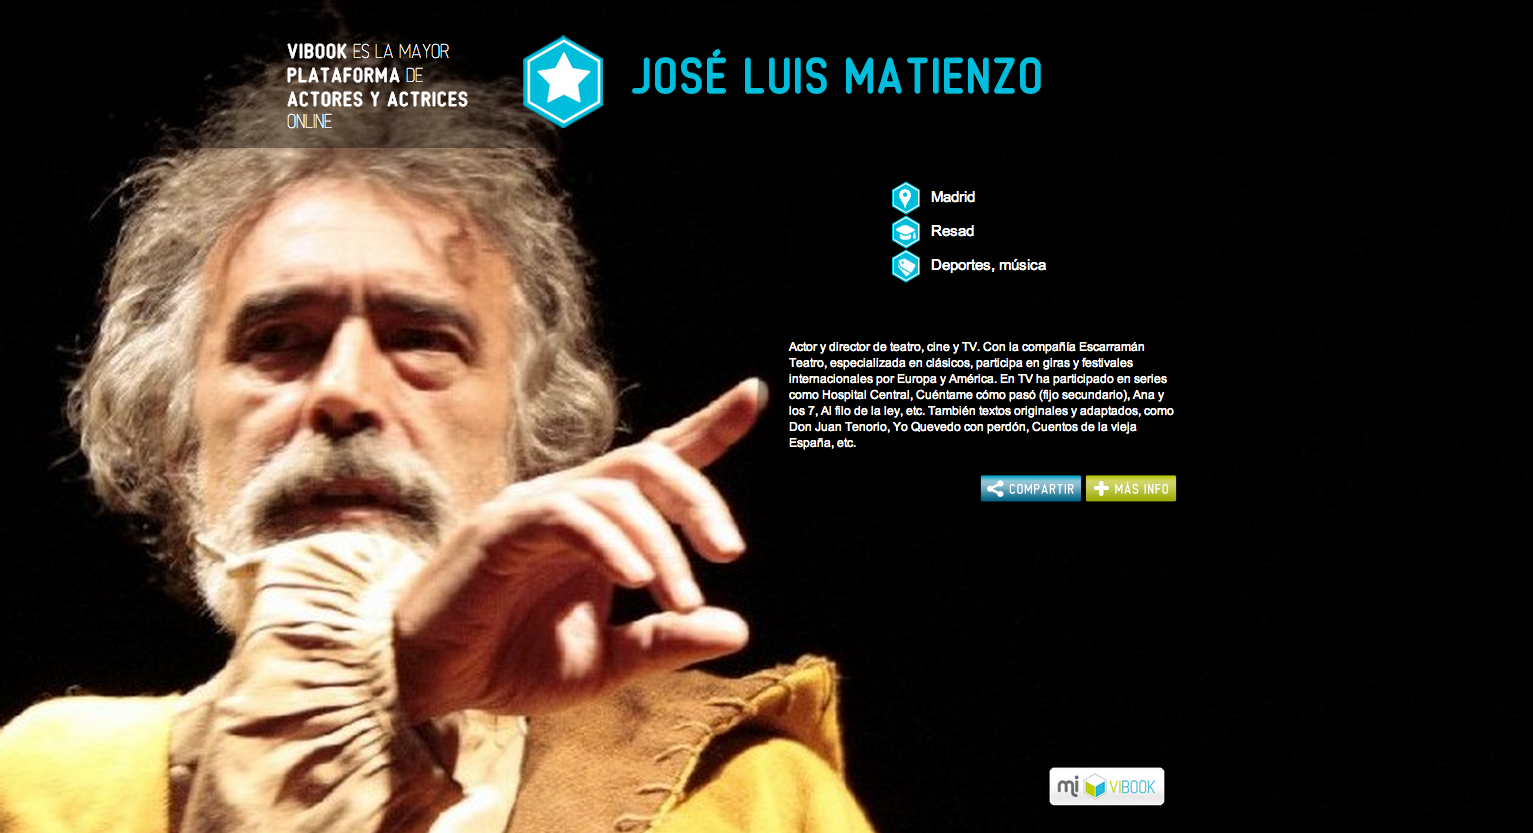 Actor JOSÉ LUIS MATIENZO